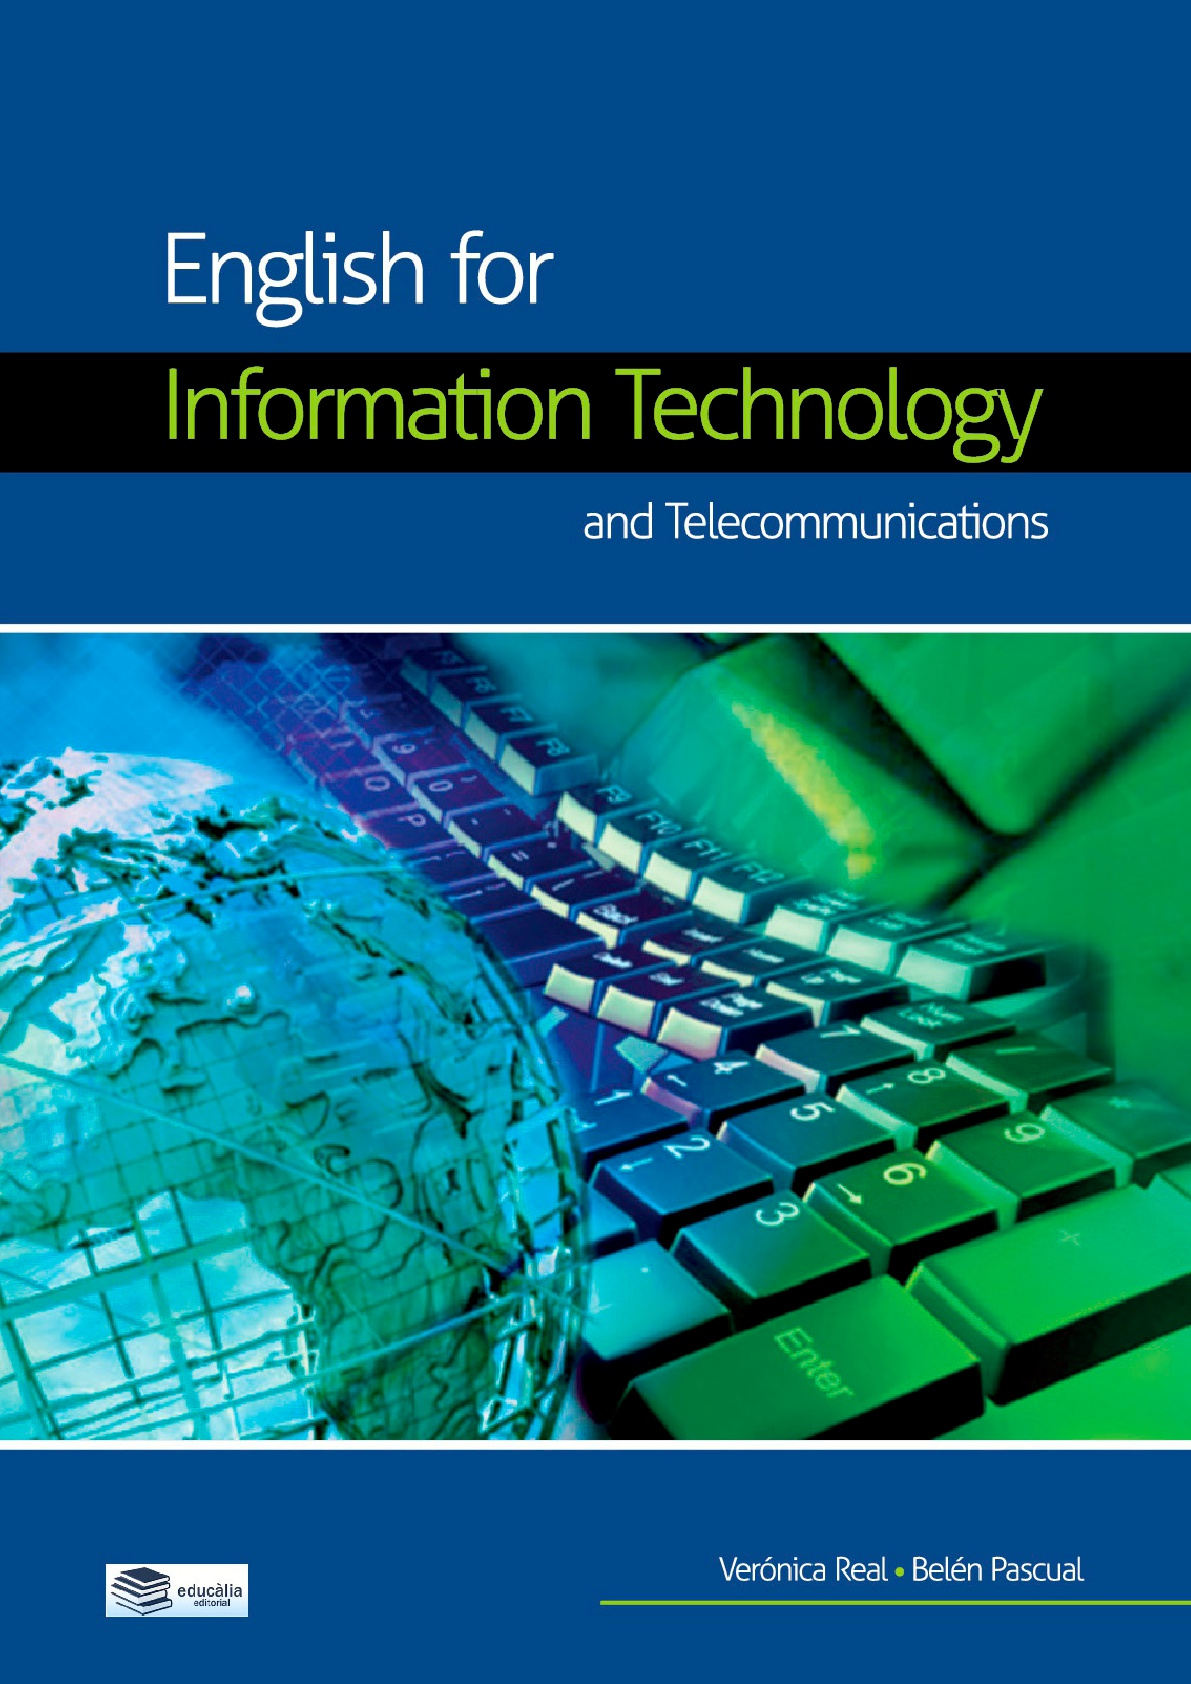 English for Information Technology and Telecommunications (Student's Book)